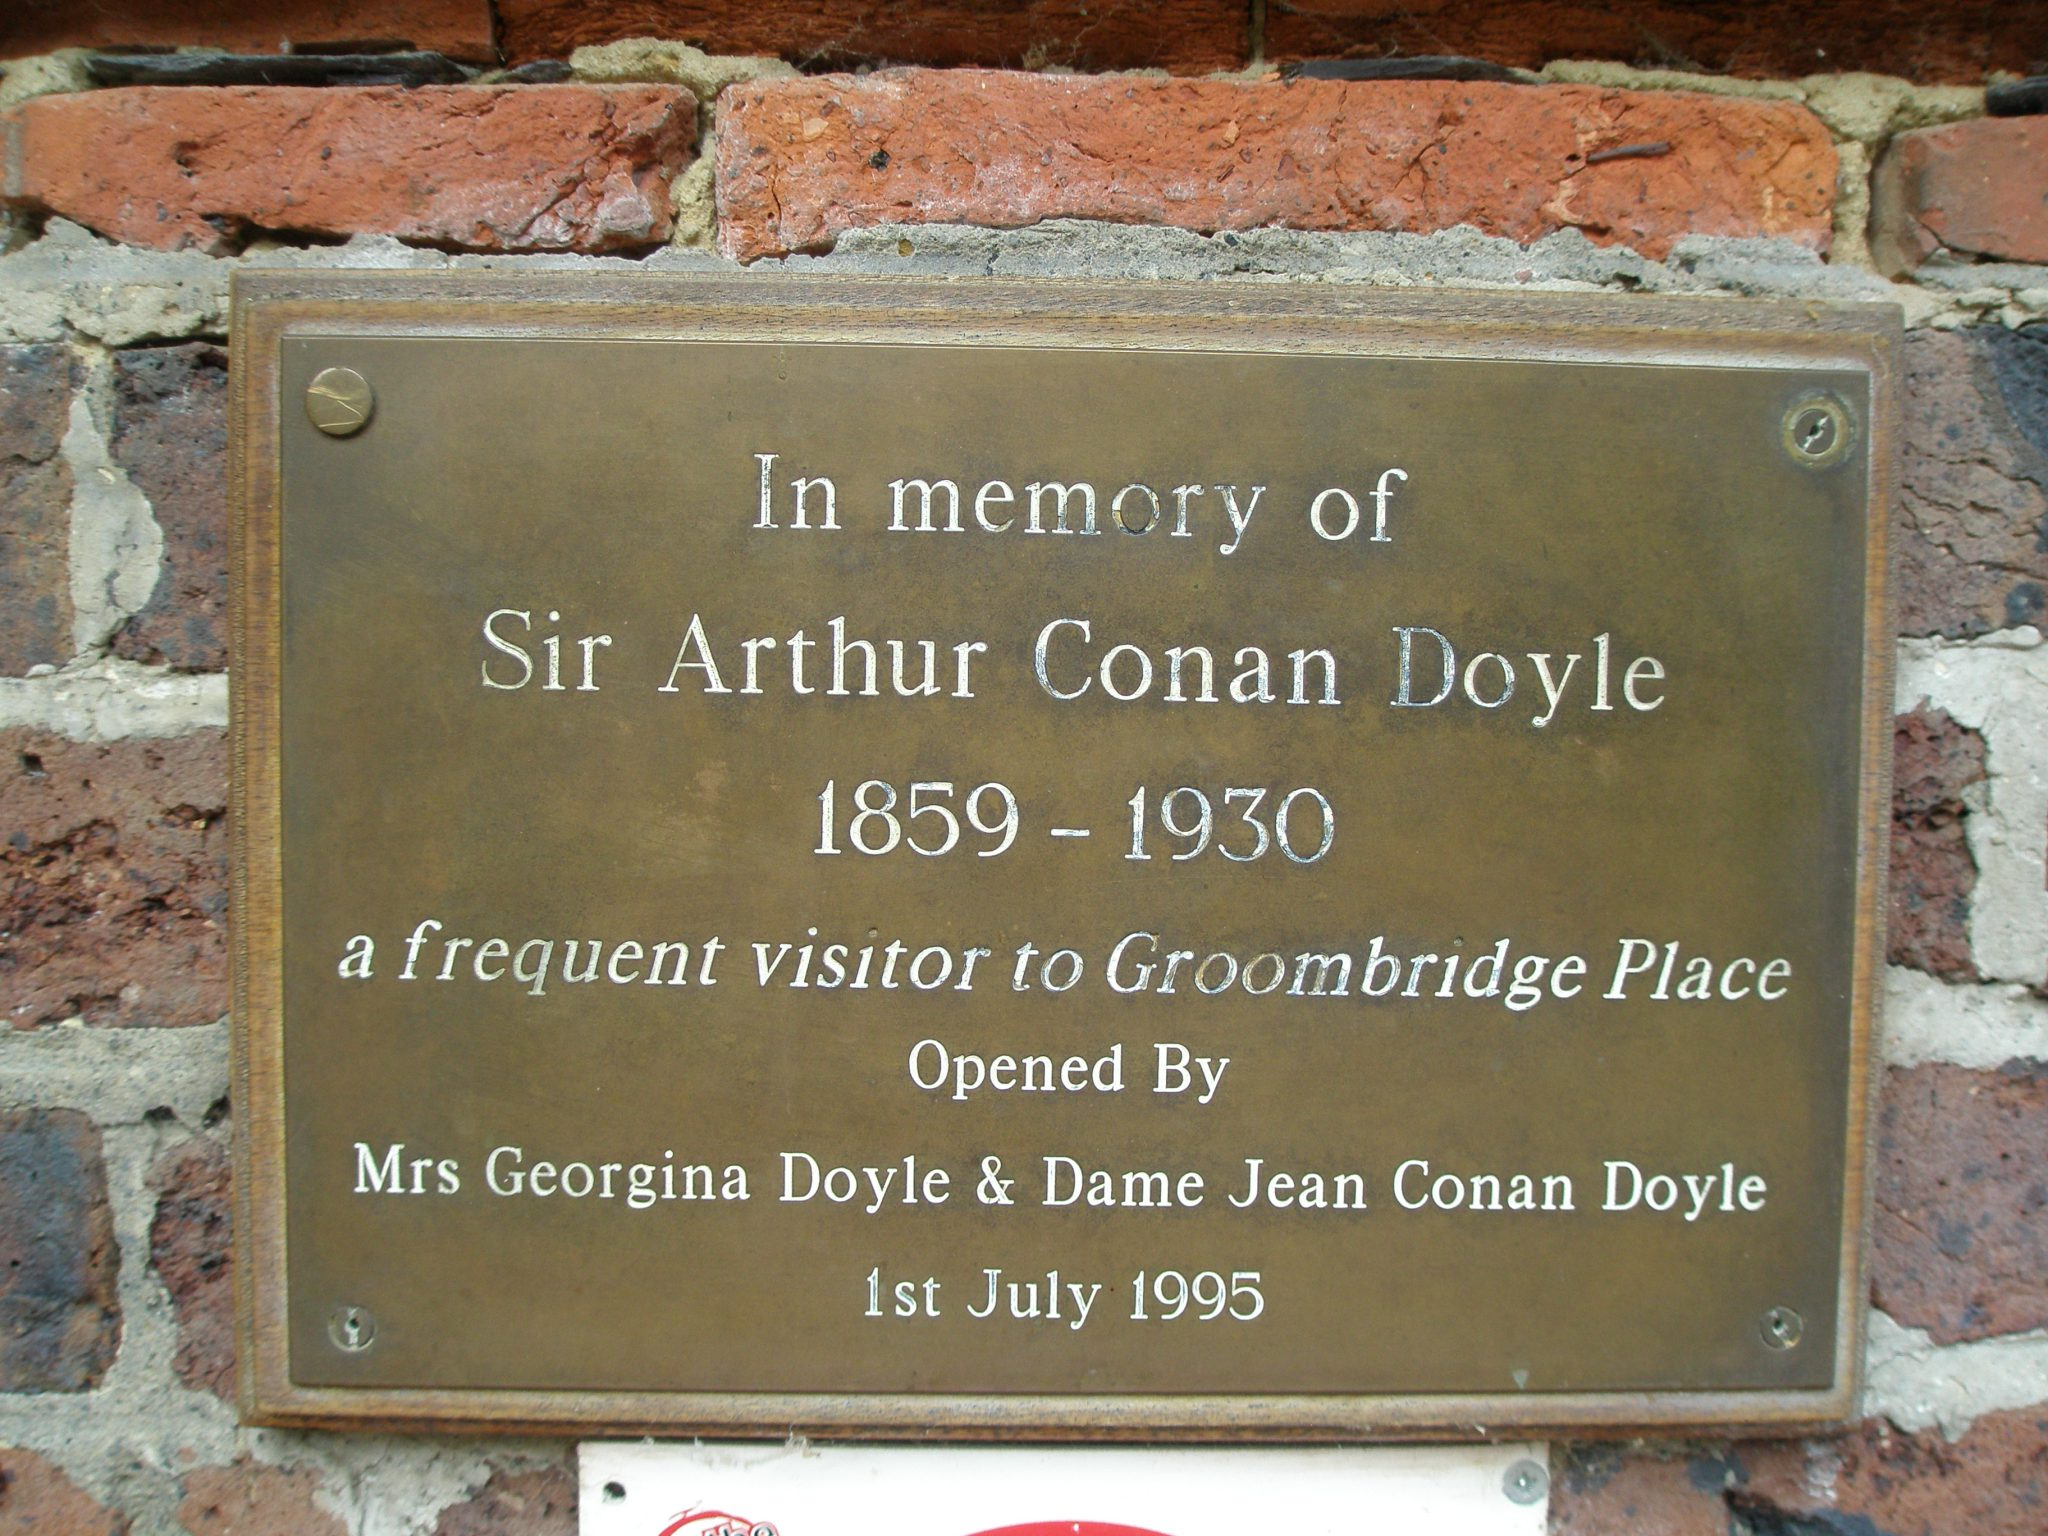 Arthur Conan Doyle was a frequent visitor to Groombridge Place